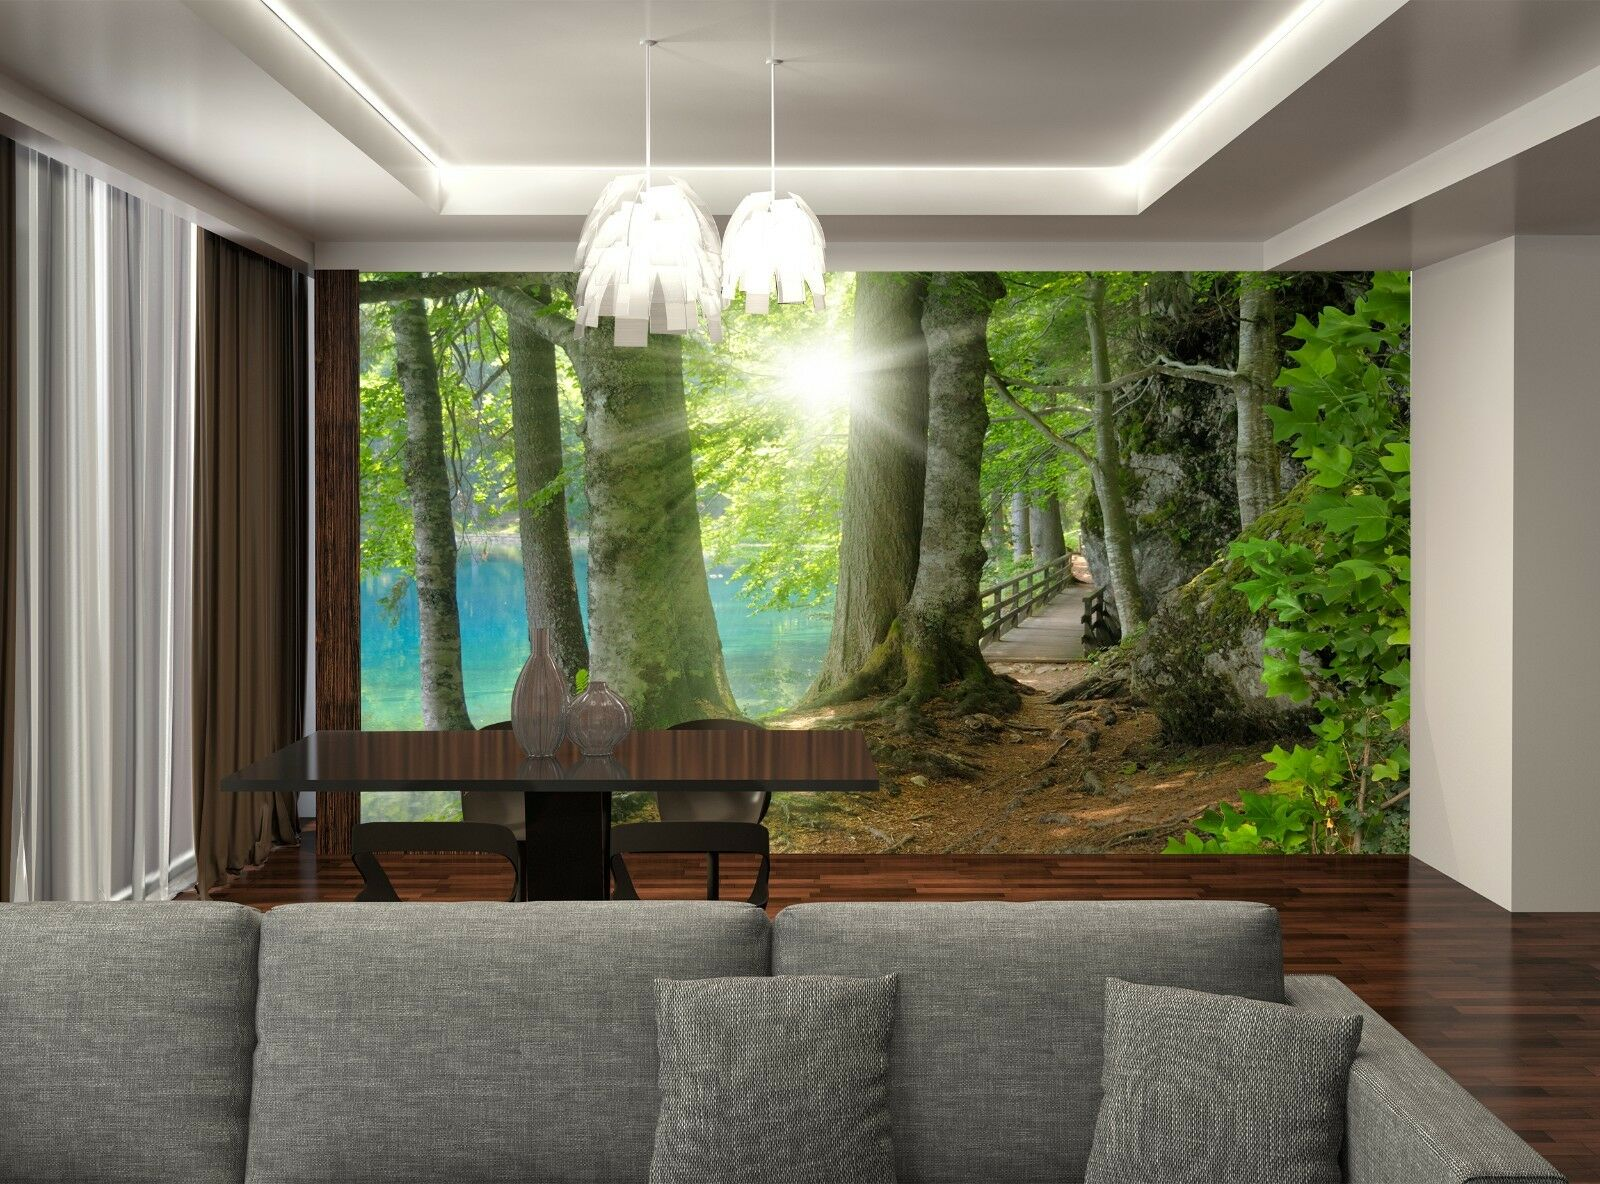 Sunset in the Forest Near the Lake Photo Wallpaper Wall Mural DECOR Paper Poster